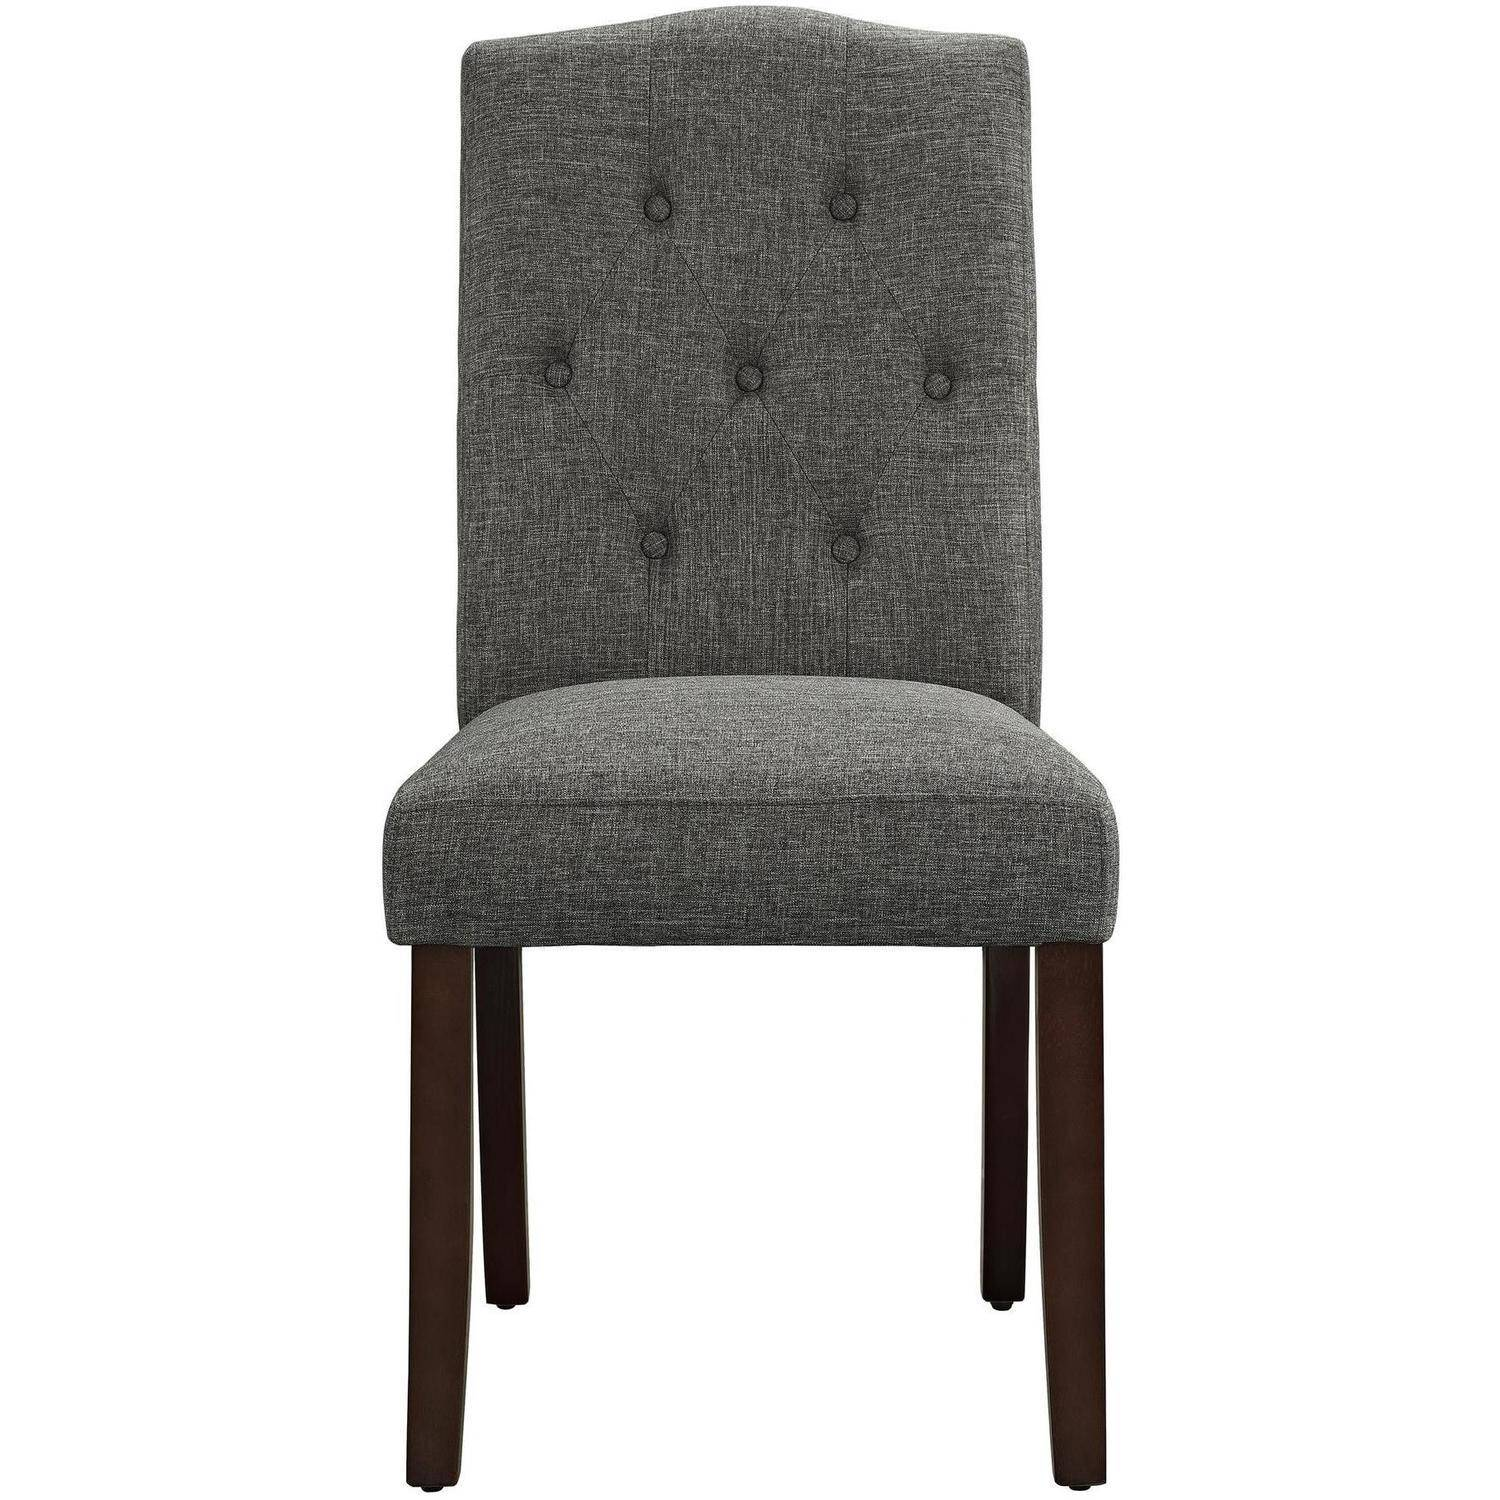 barton chair accessories true innovations office better homes and gardens parsons tufted dining multiple colors walmart com